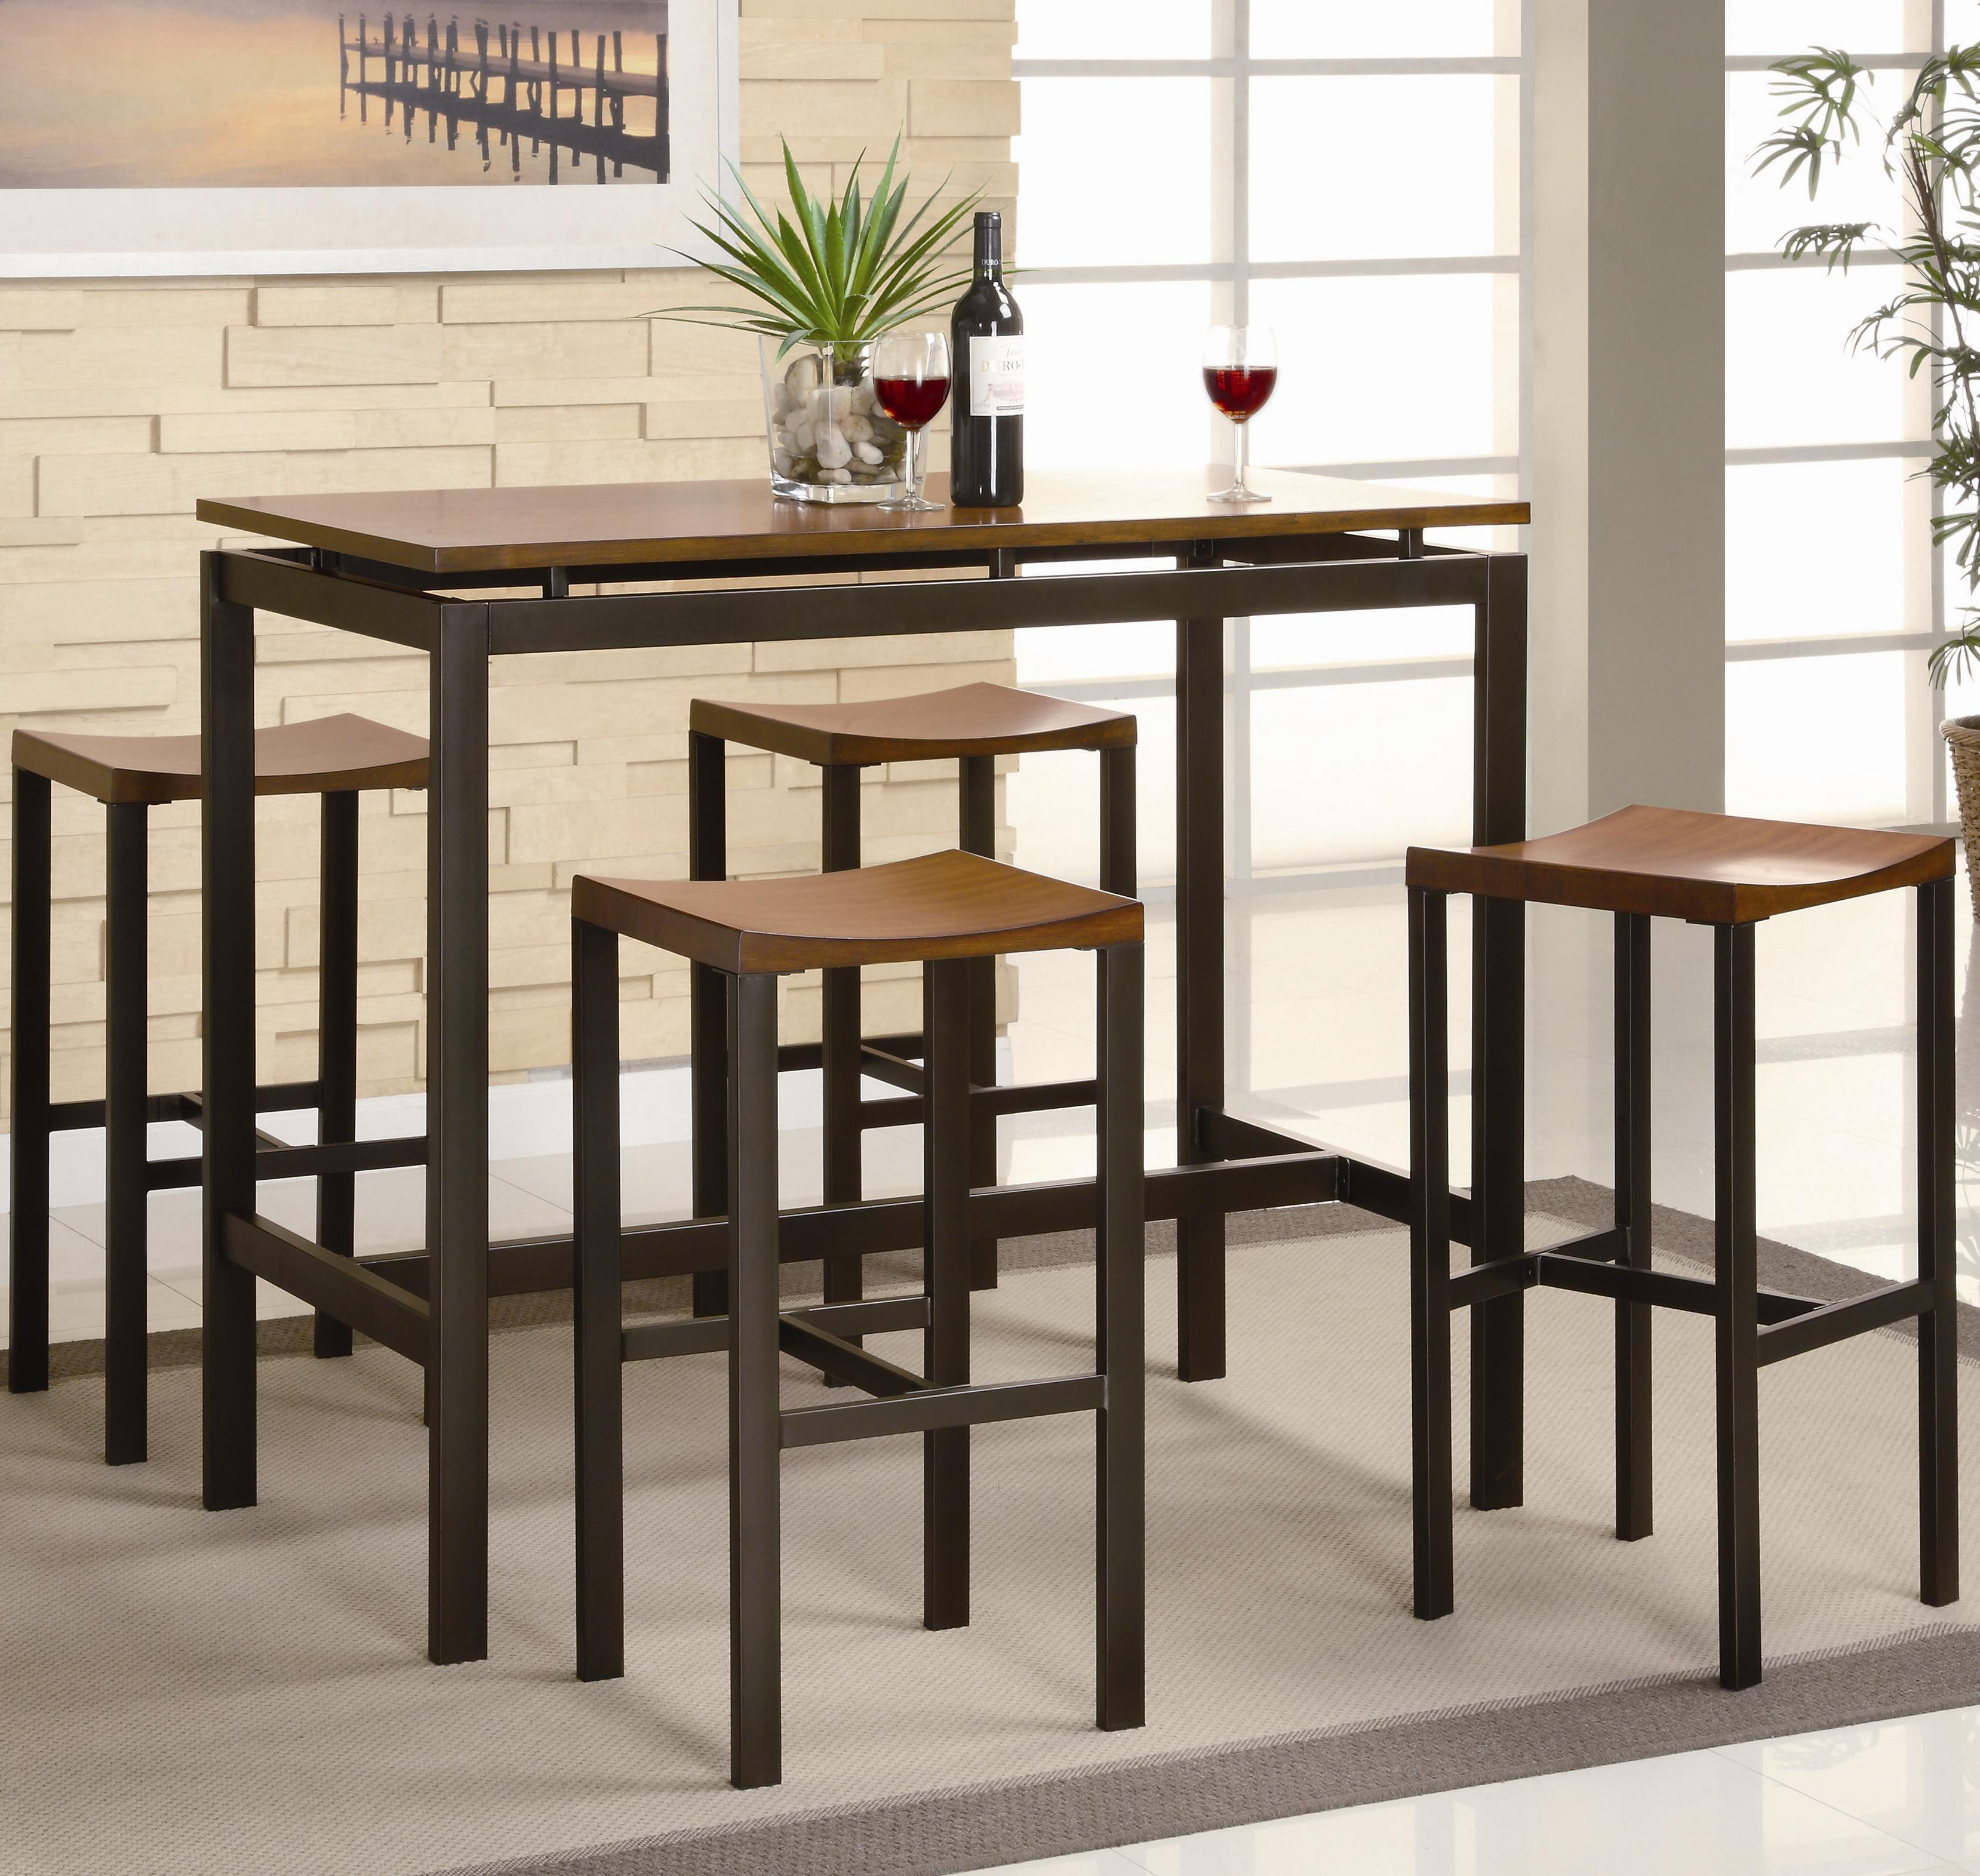 Coaster Atlus Counter Height Contemporary Black Metal Table with Warm Oak Top and 4 Stools - Coaster Fine Furniture & Coaster Atlus Counter Height Contemporary Black Metal Table with ...